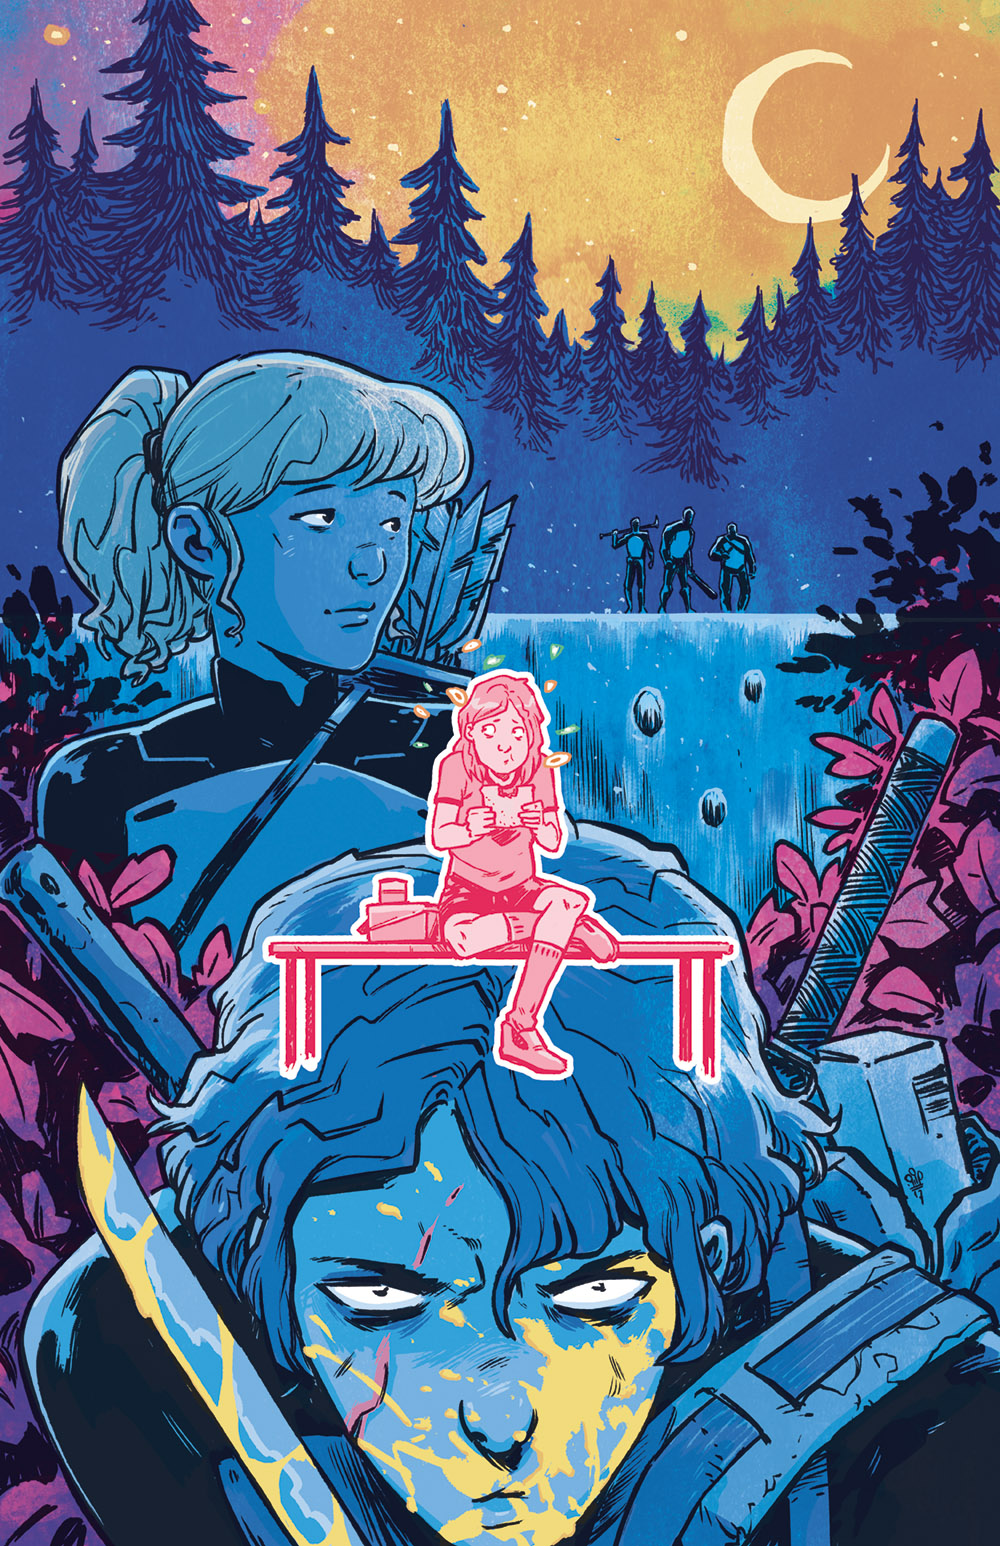 LUCY_Cover2_COL.jpg